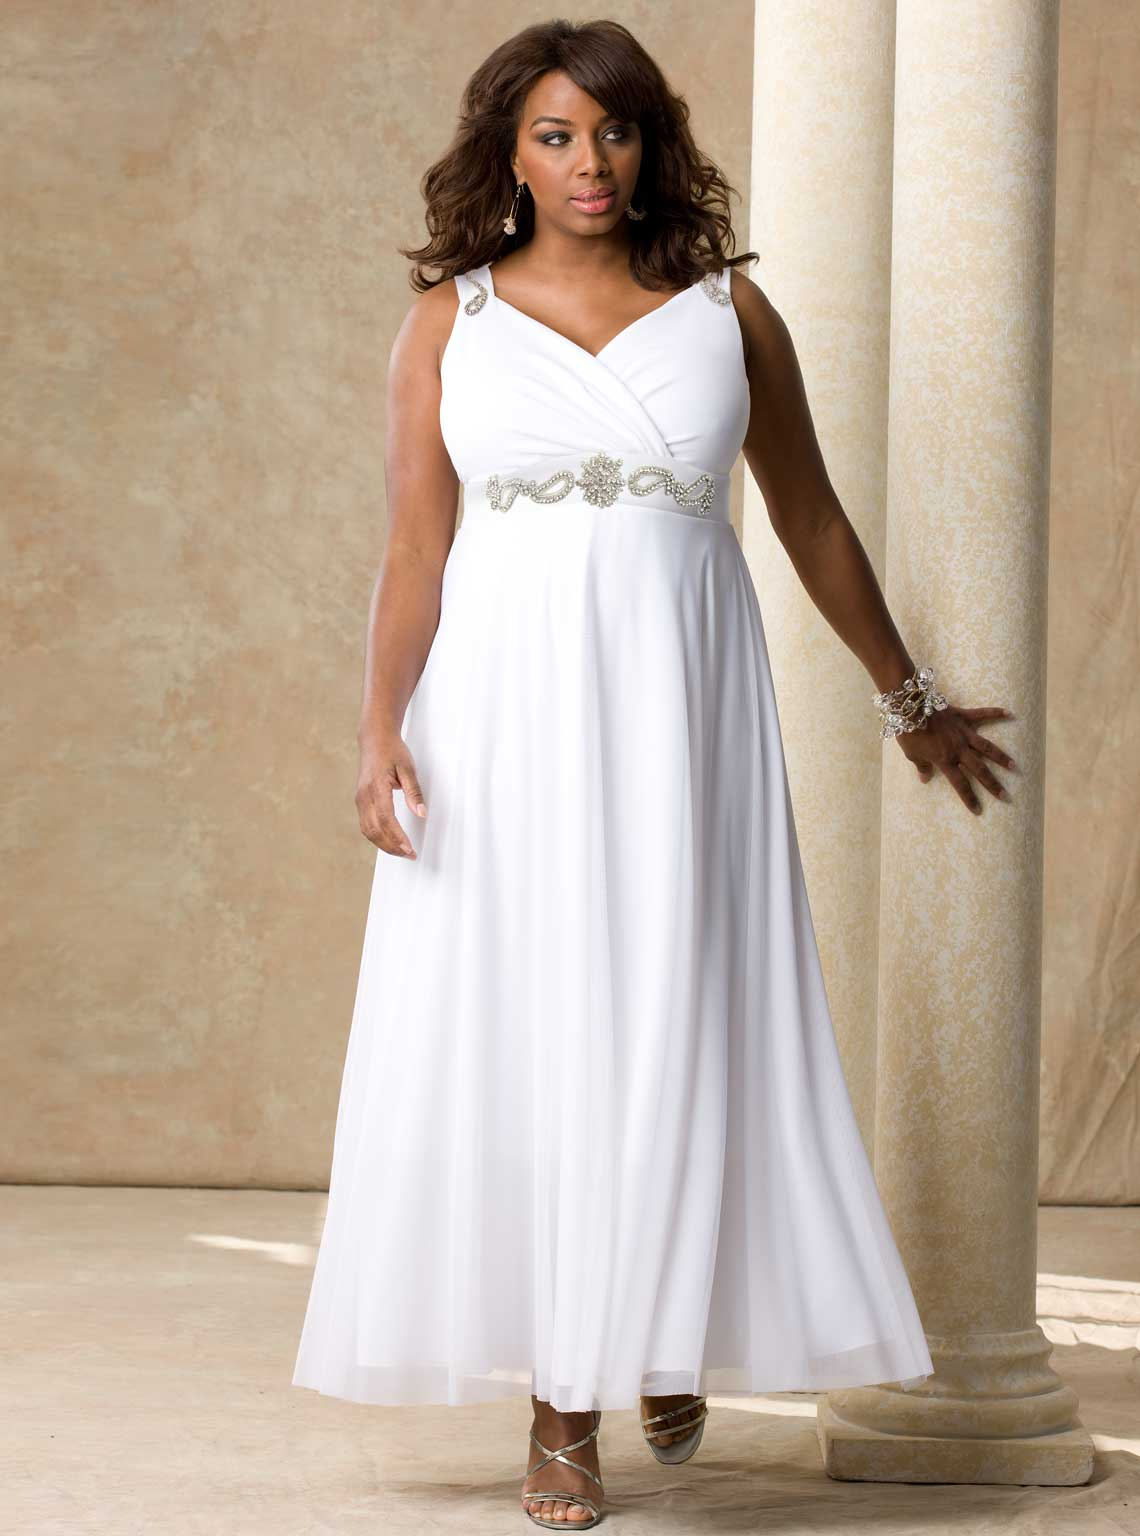 best wedding ideas searching for an affordable plus size With wedding dresses plus sizes